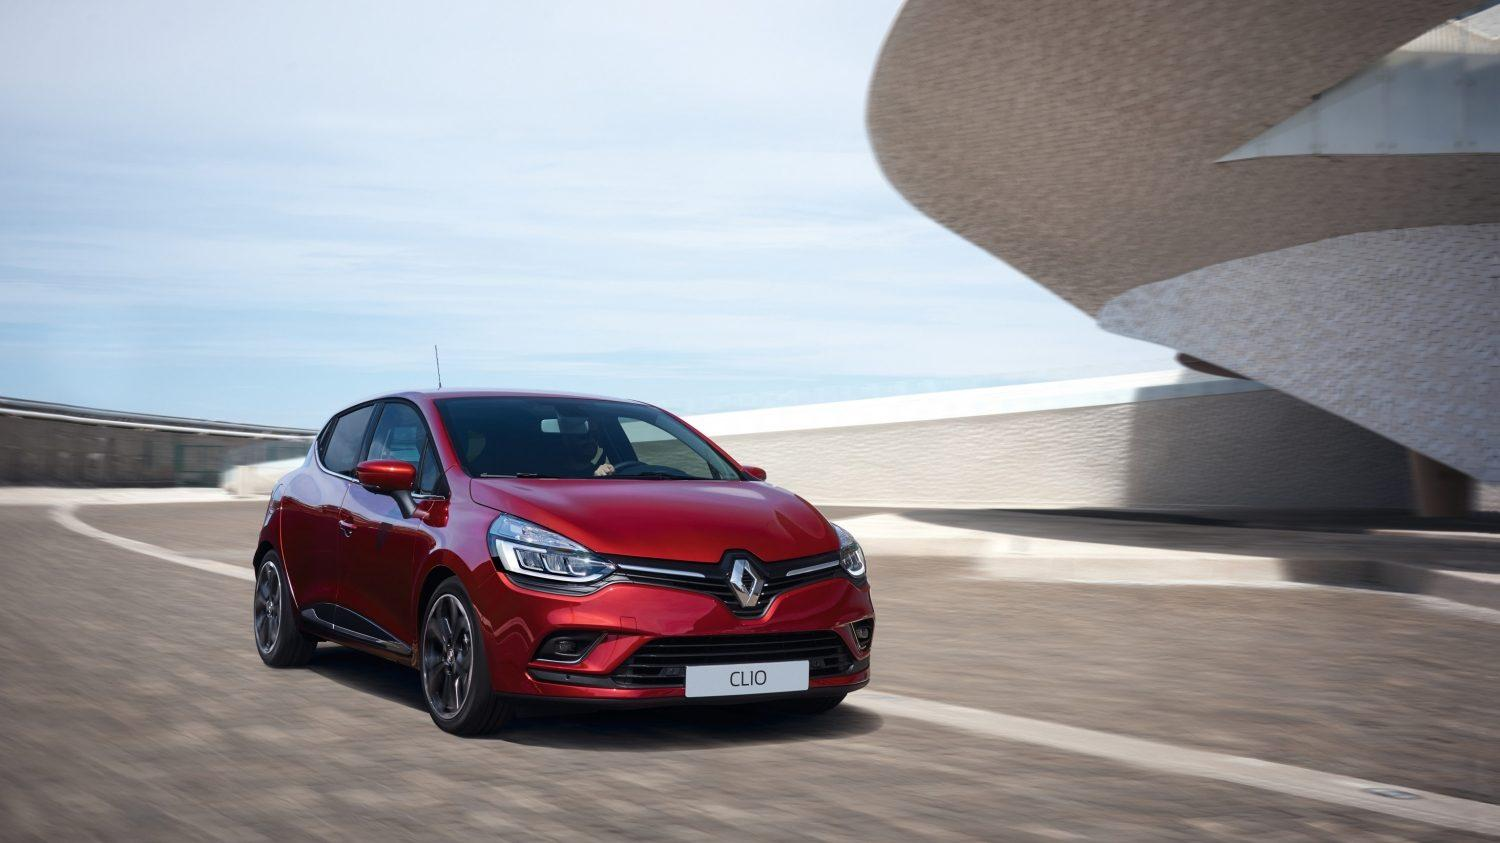 Is a Renault Clio a good first car for new drivers?